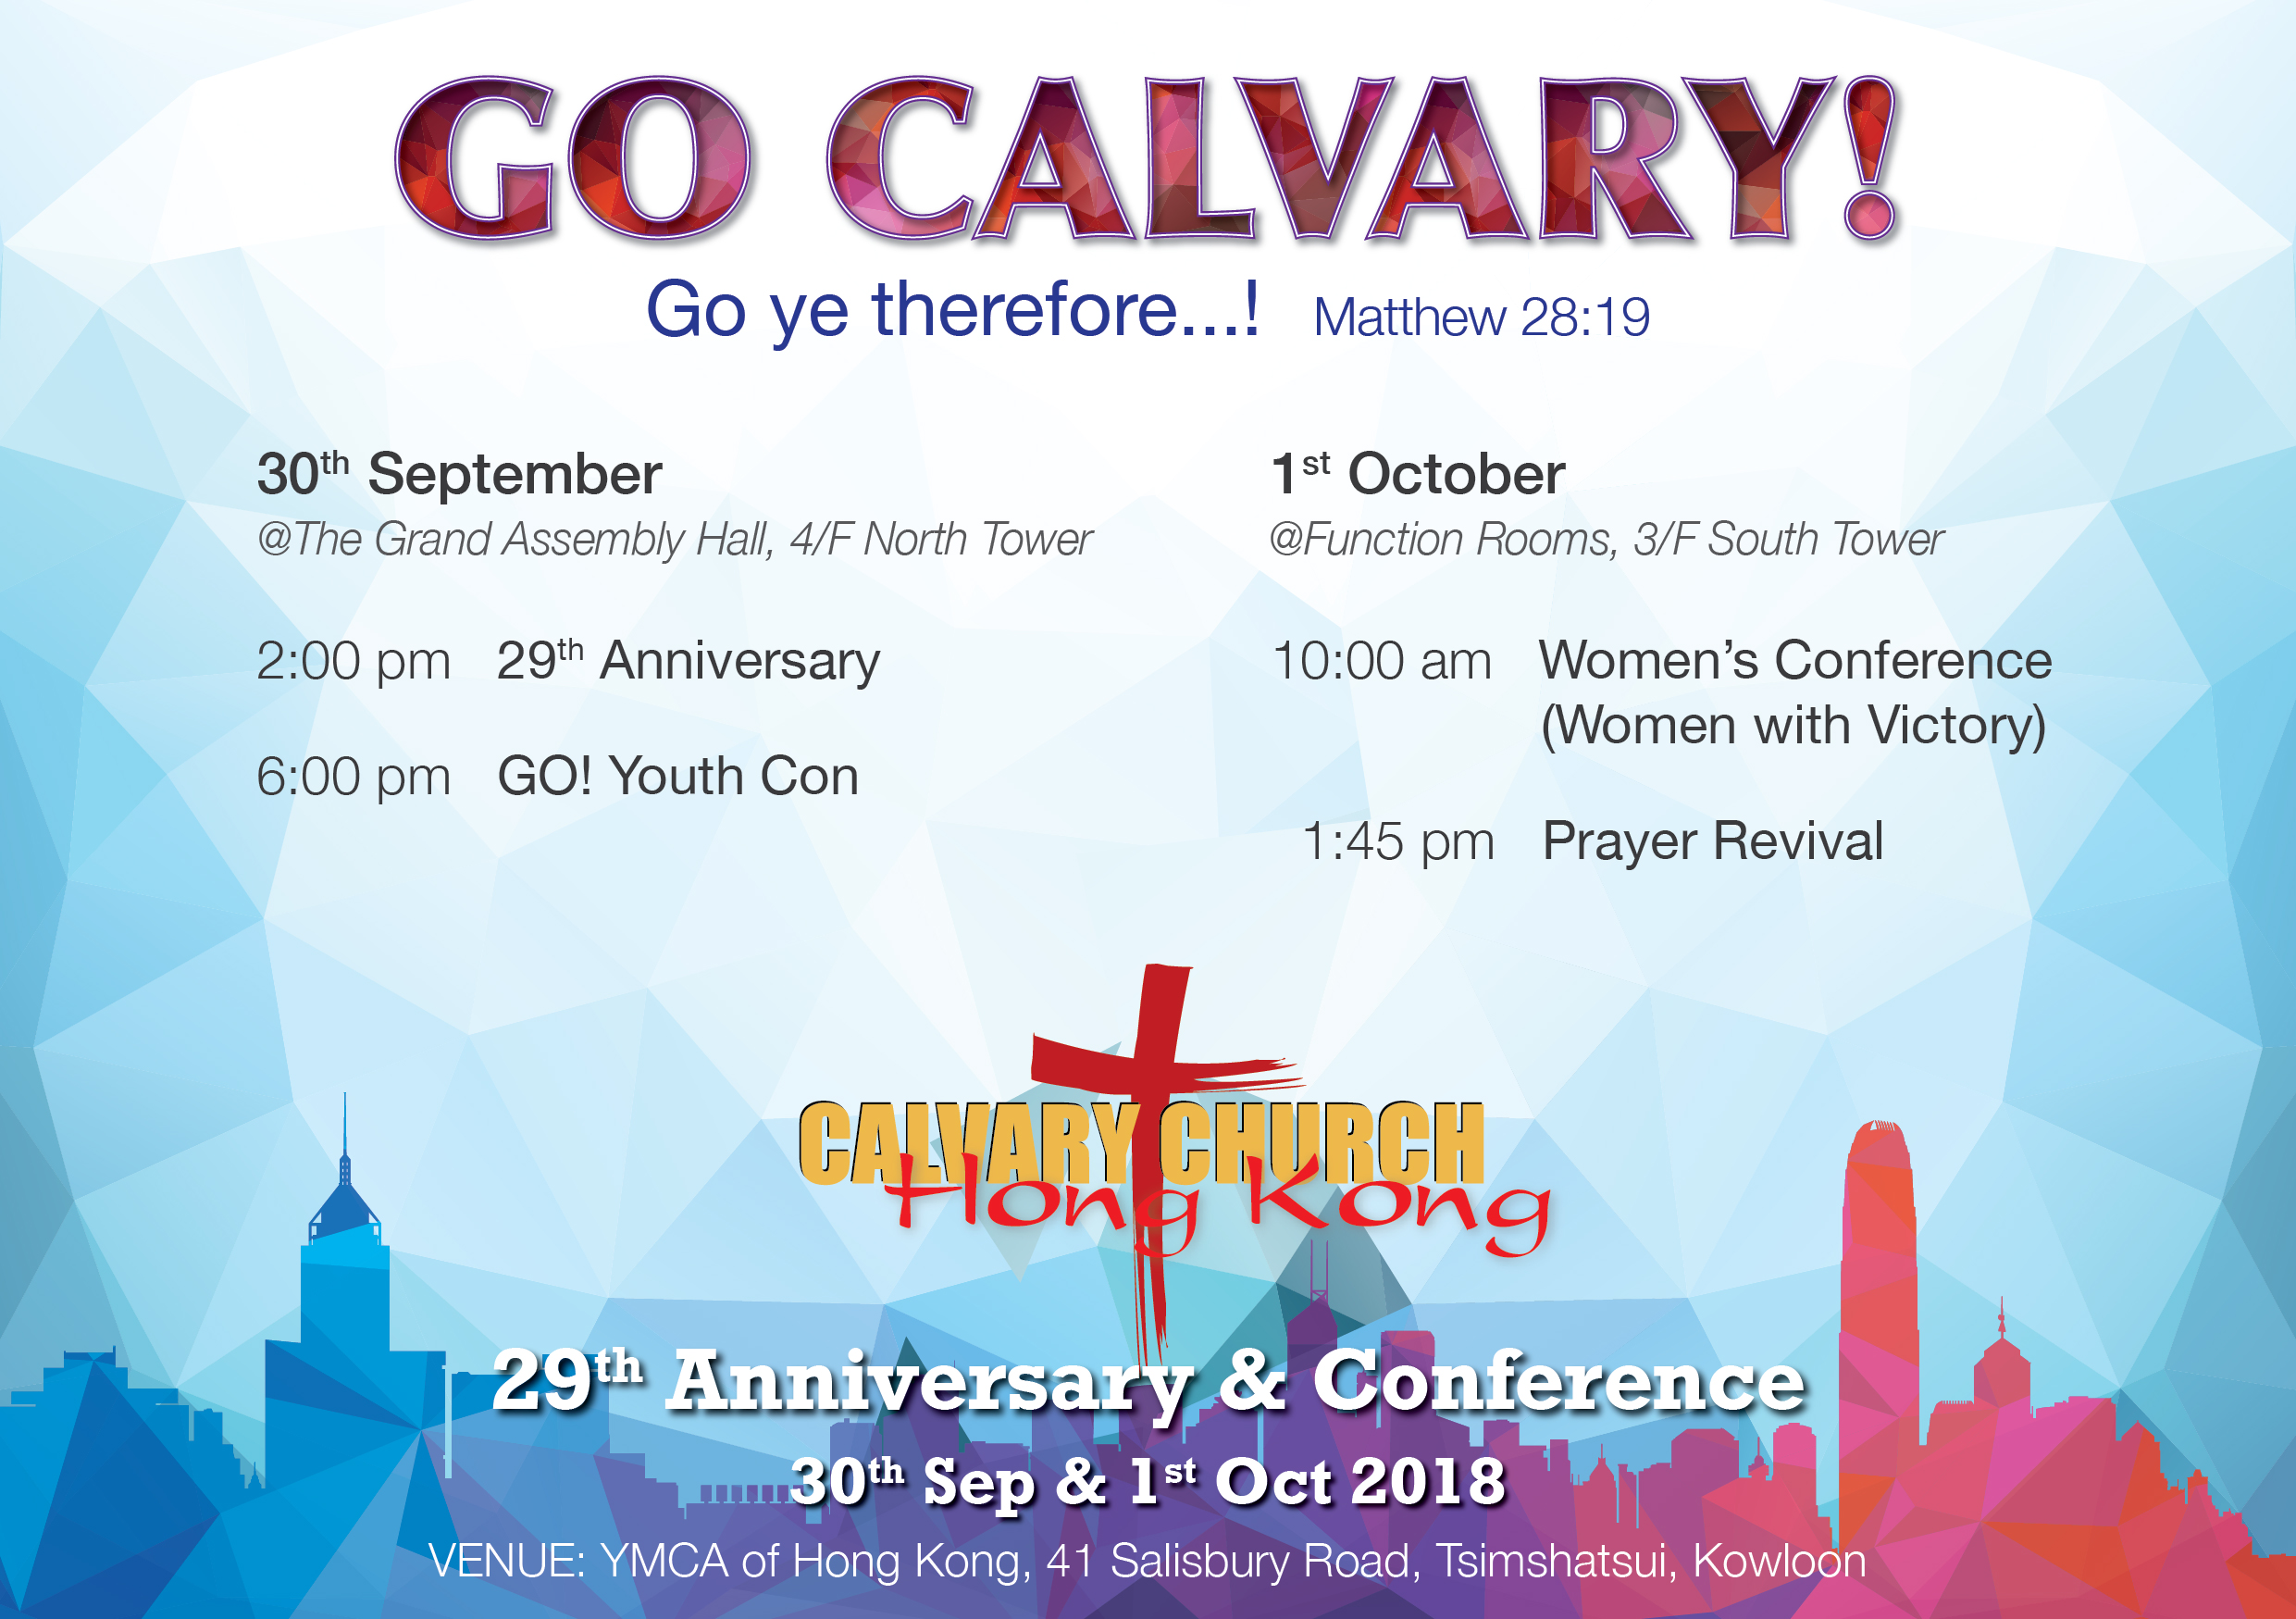 Calvary Church 29th Anniversary